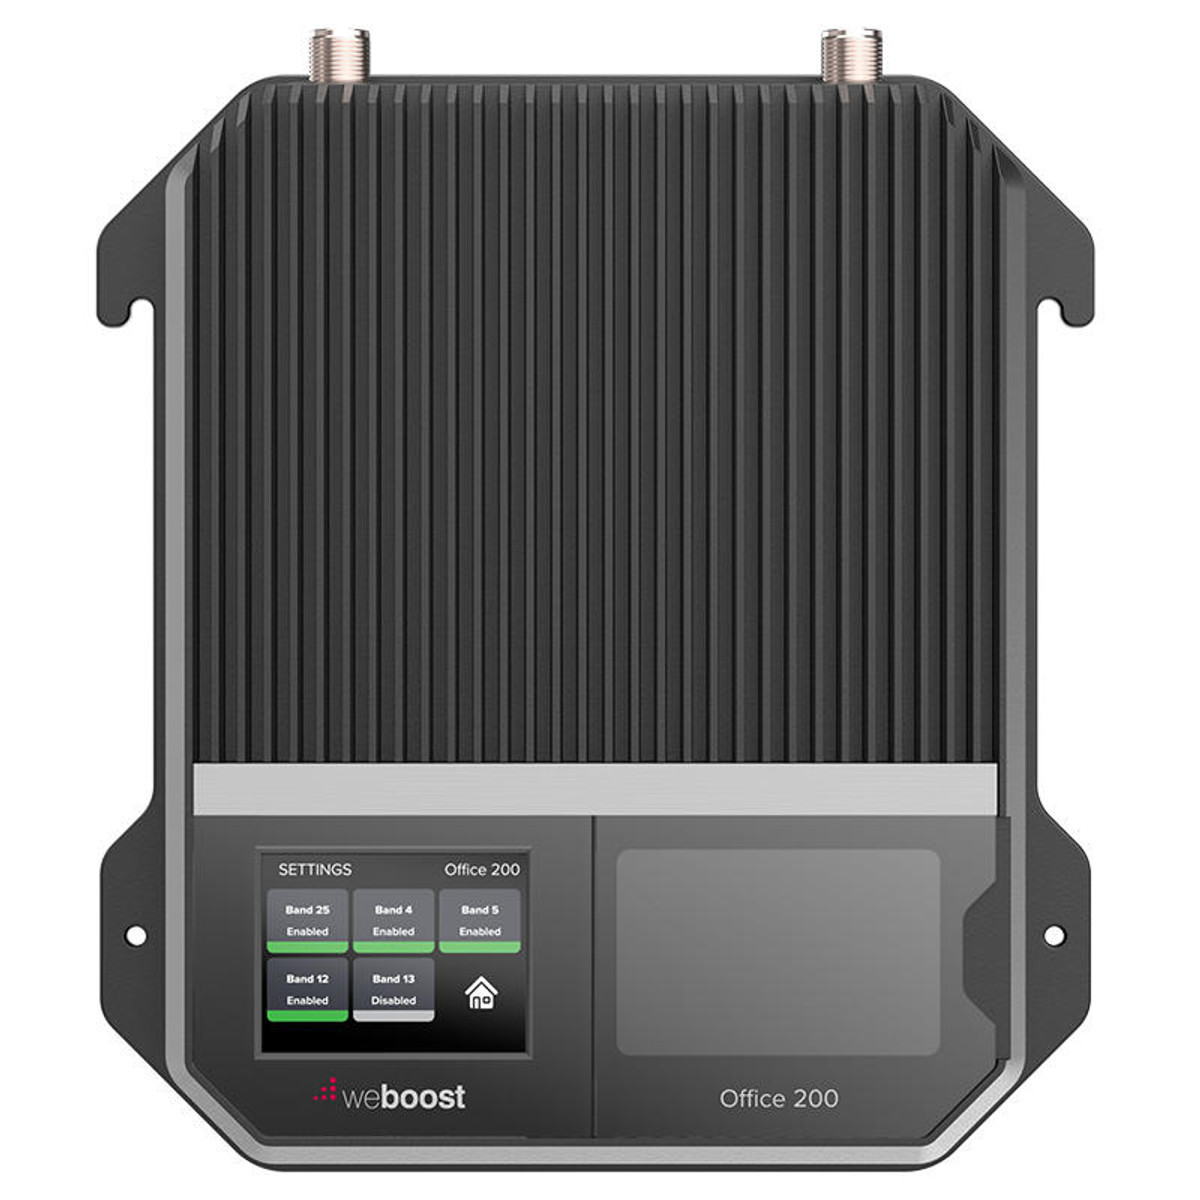 weBoost weBoost for Business Office 200 Installed Signal Booster Kit or 473047